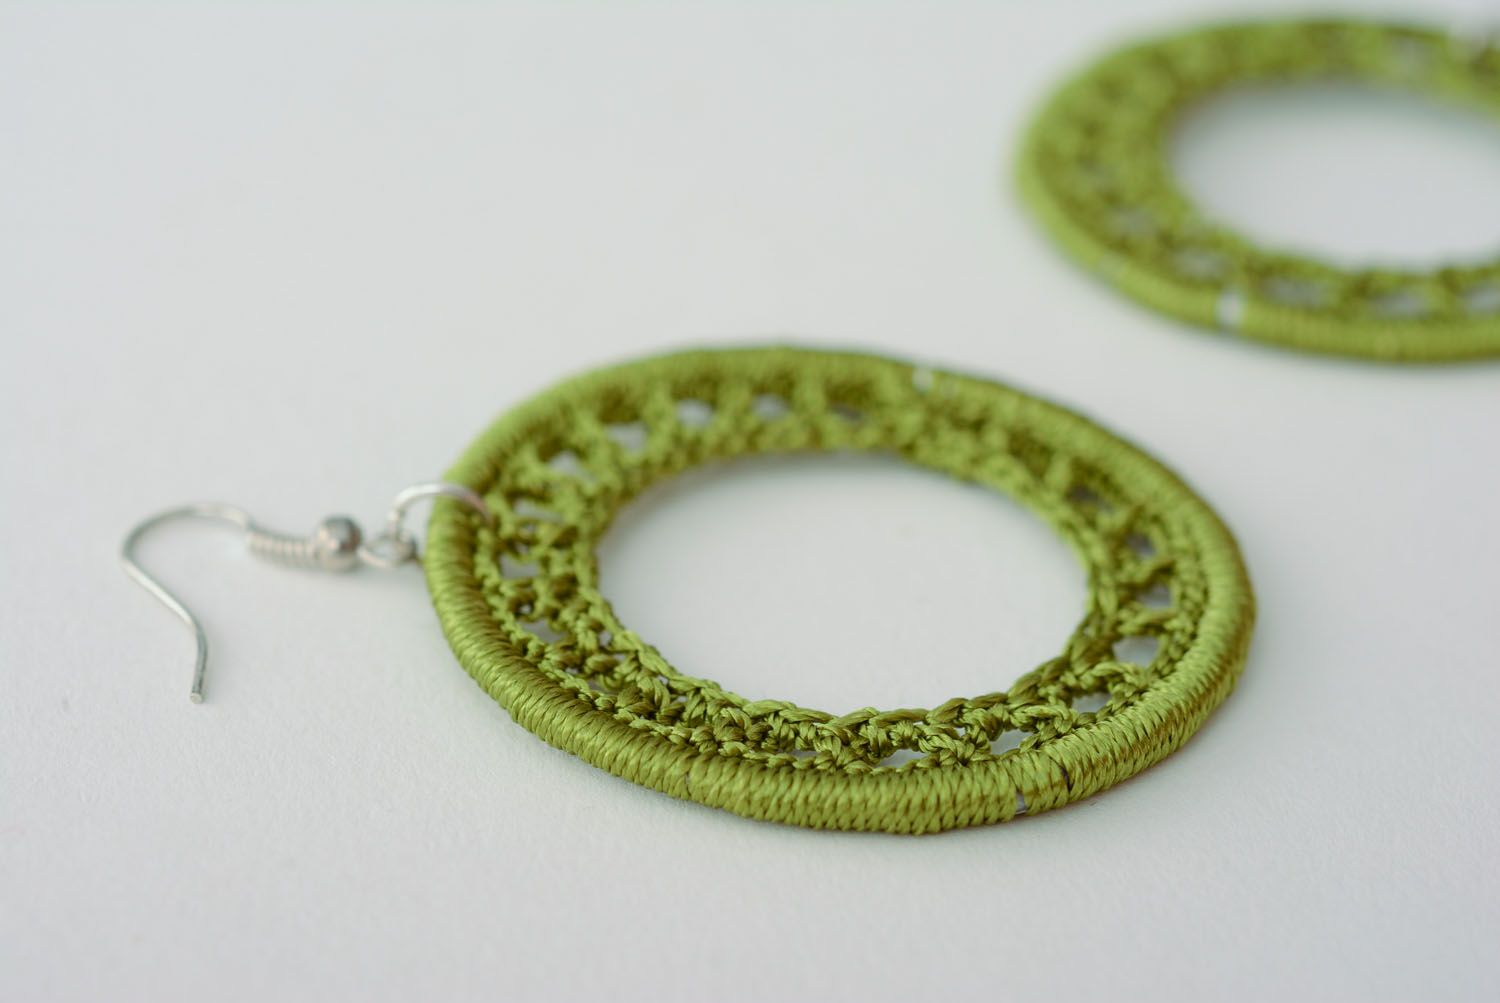 Homemade woven earrings photo 4